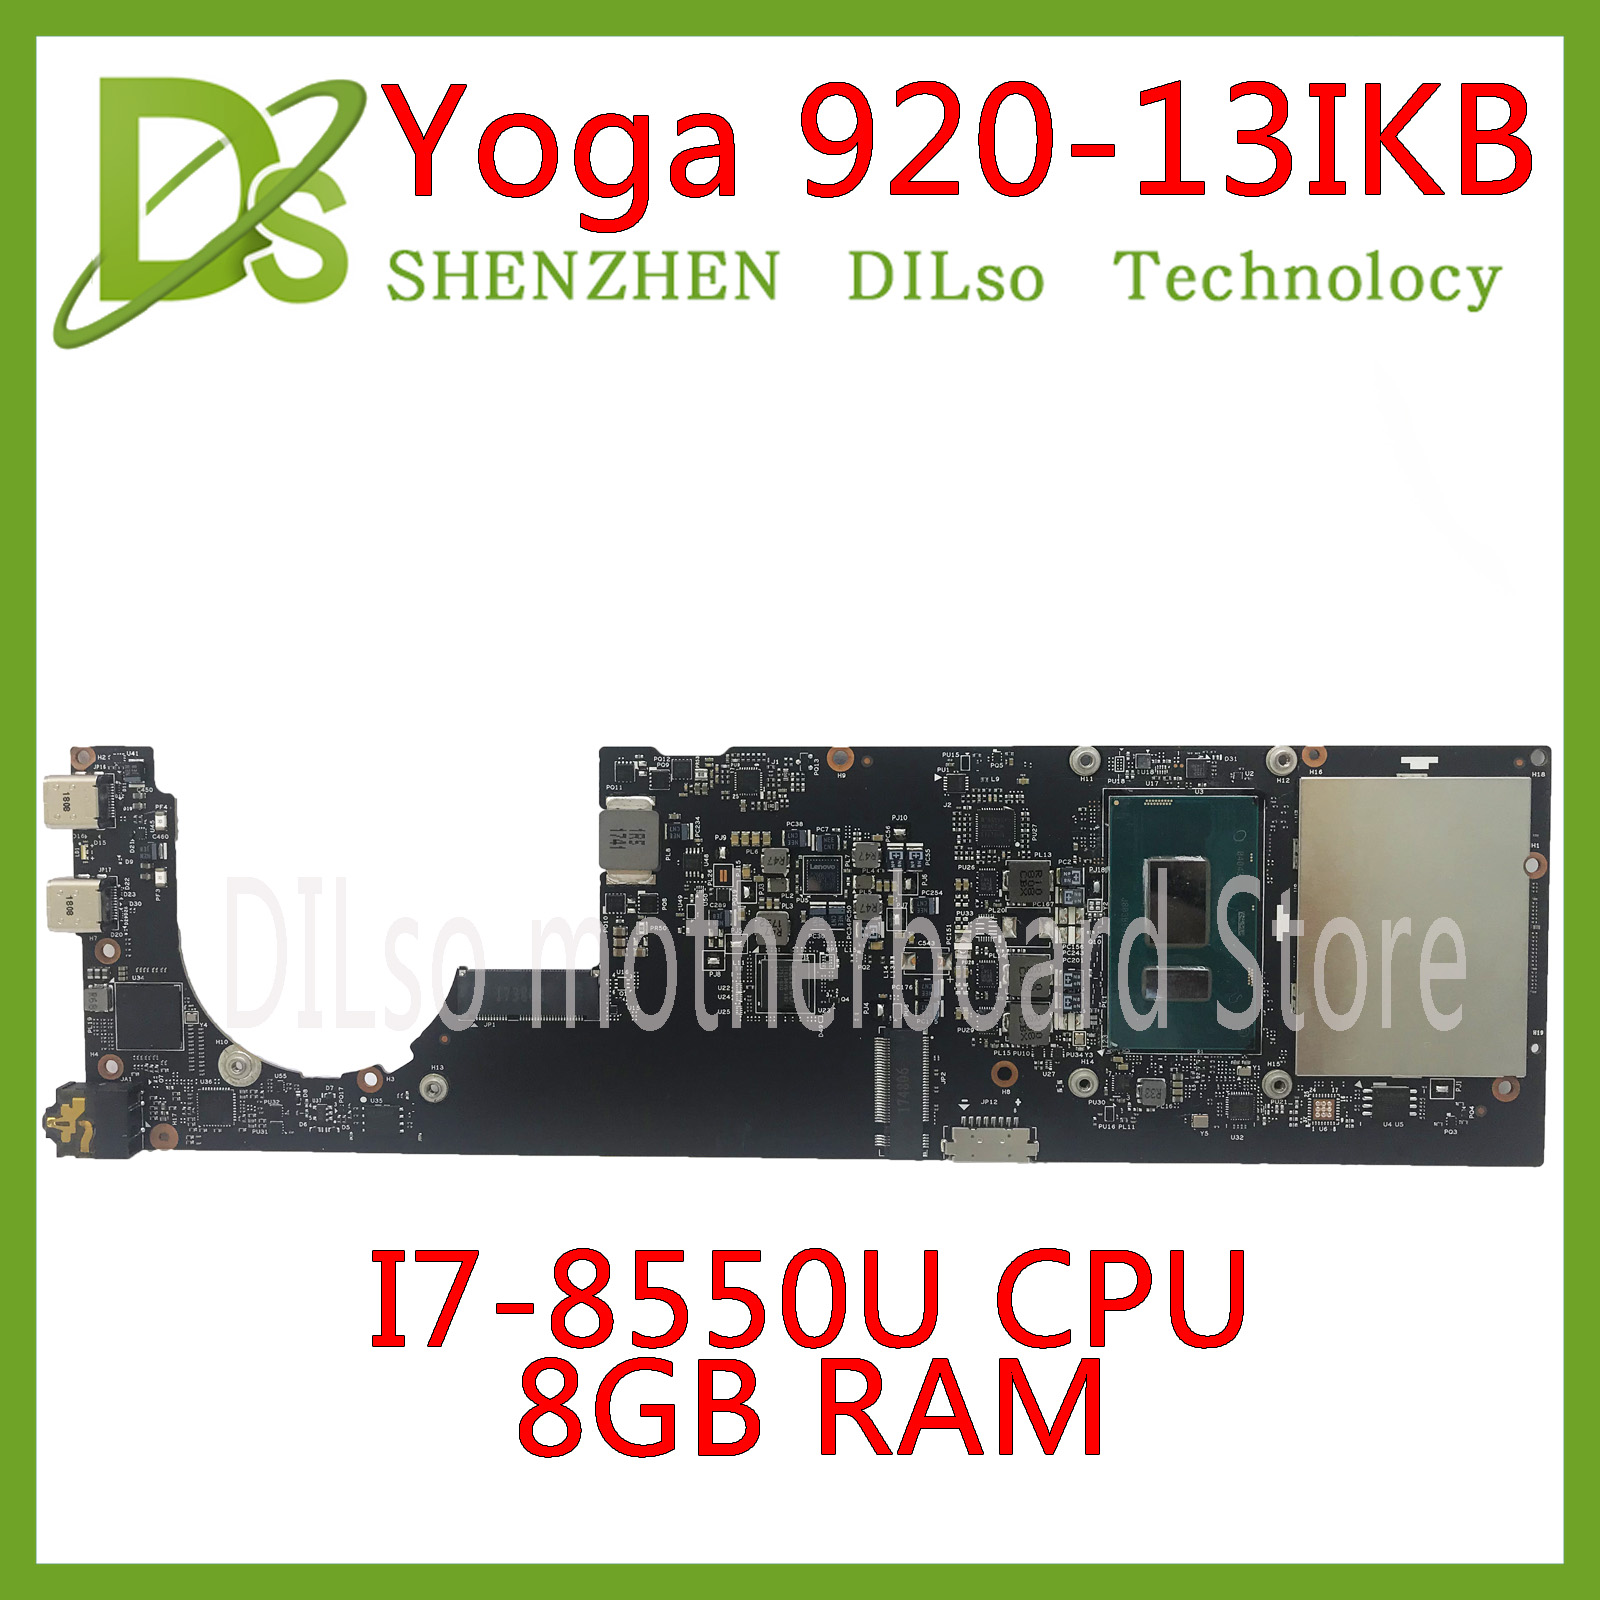 KEFU DYG60 NM-B291 for Lenovo Yoga920 yoga 920-13IKB Laptop motherboard <font><b>5B20Q09639</b></font> I7-8550U 8GB RAM 100% Tested original work image